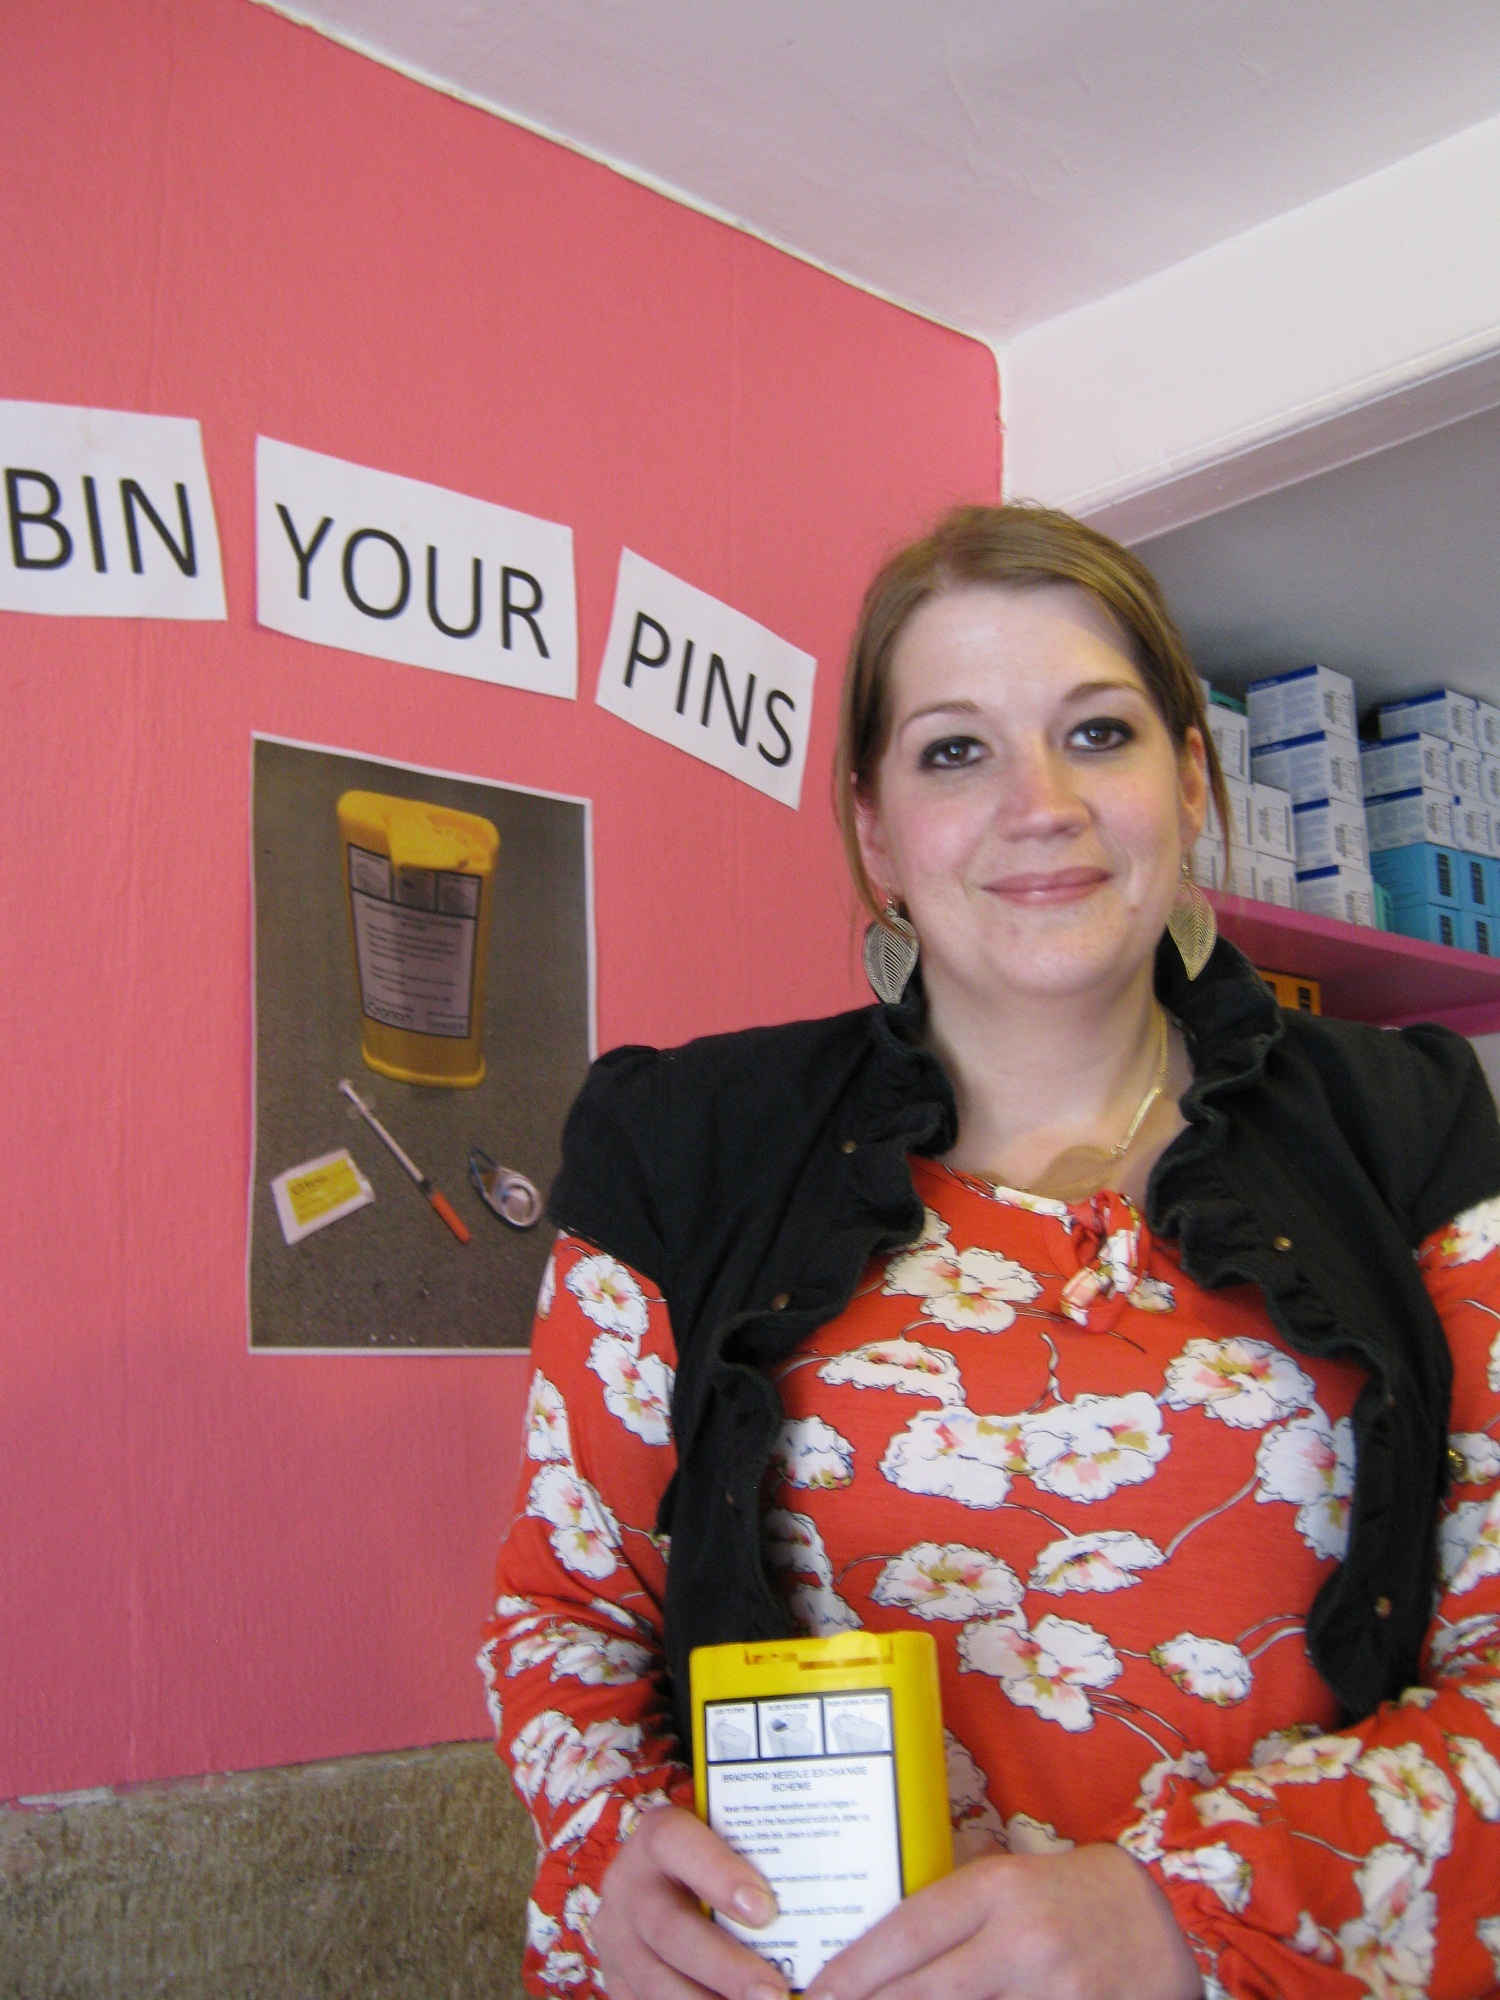 Project 6 worker, Ellie McNeil, promoting the 'Bin Your Pin' campaign among its clients